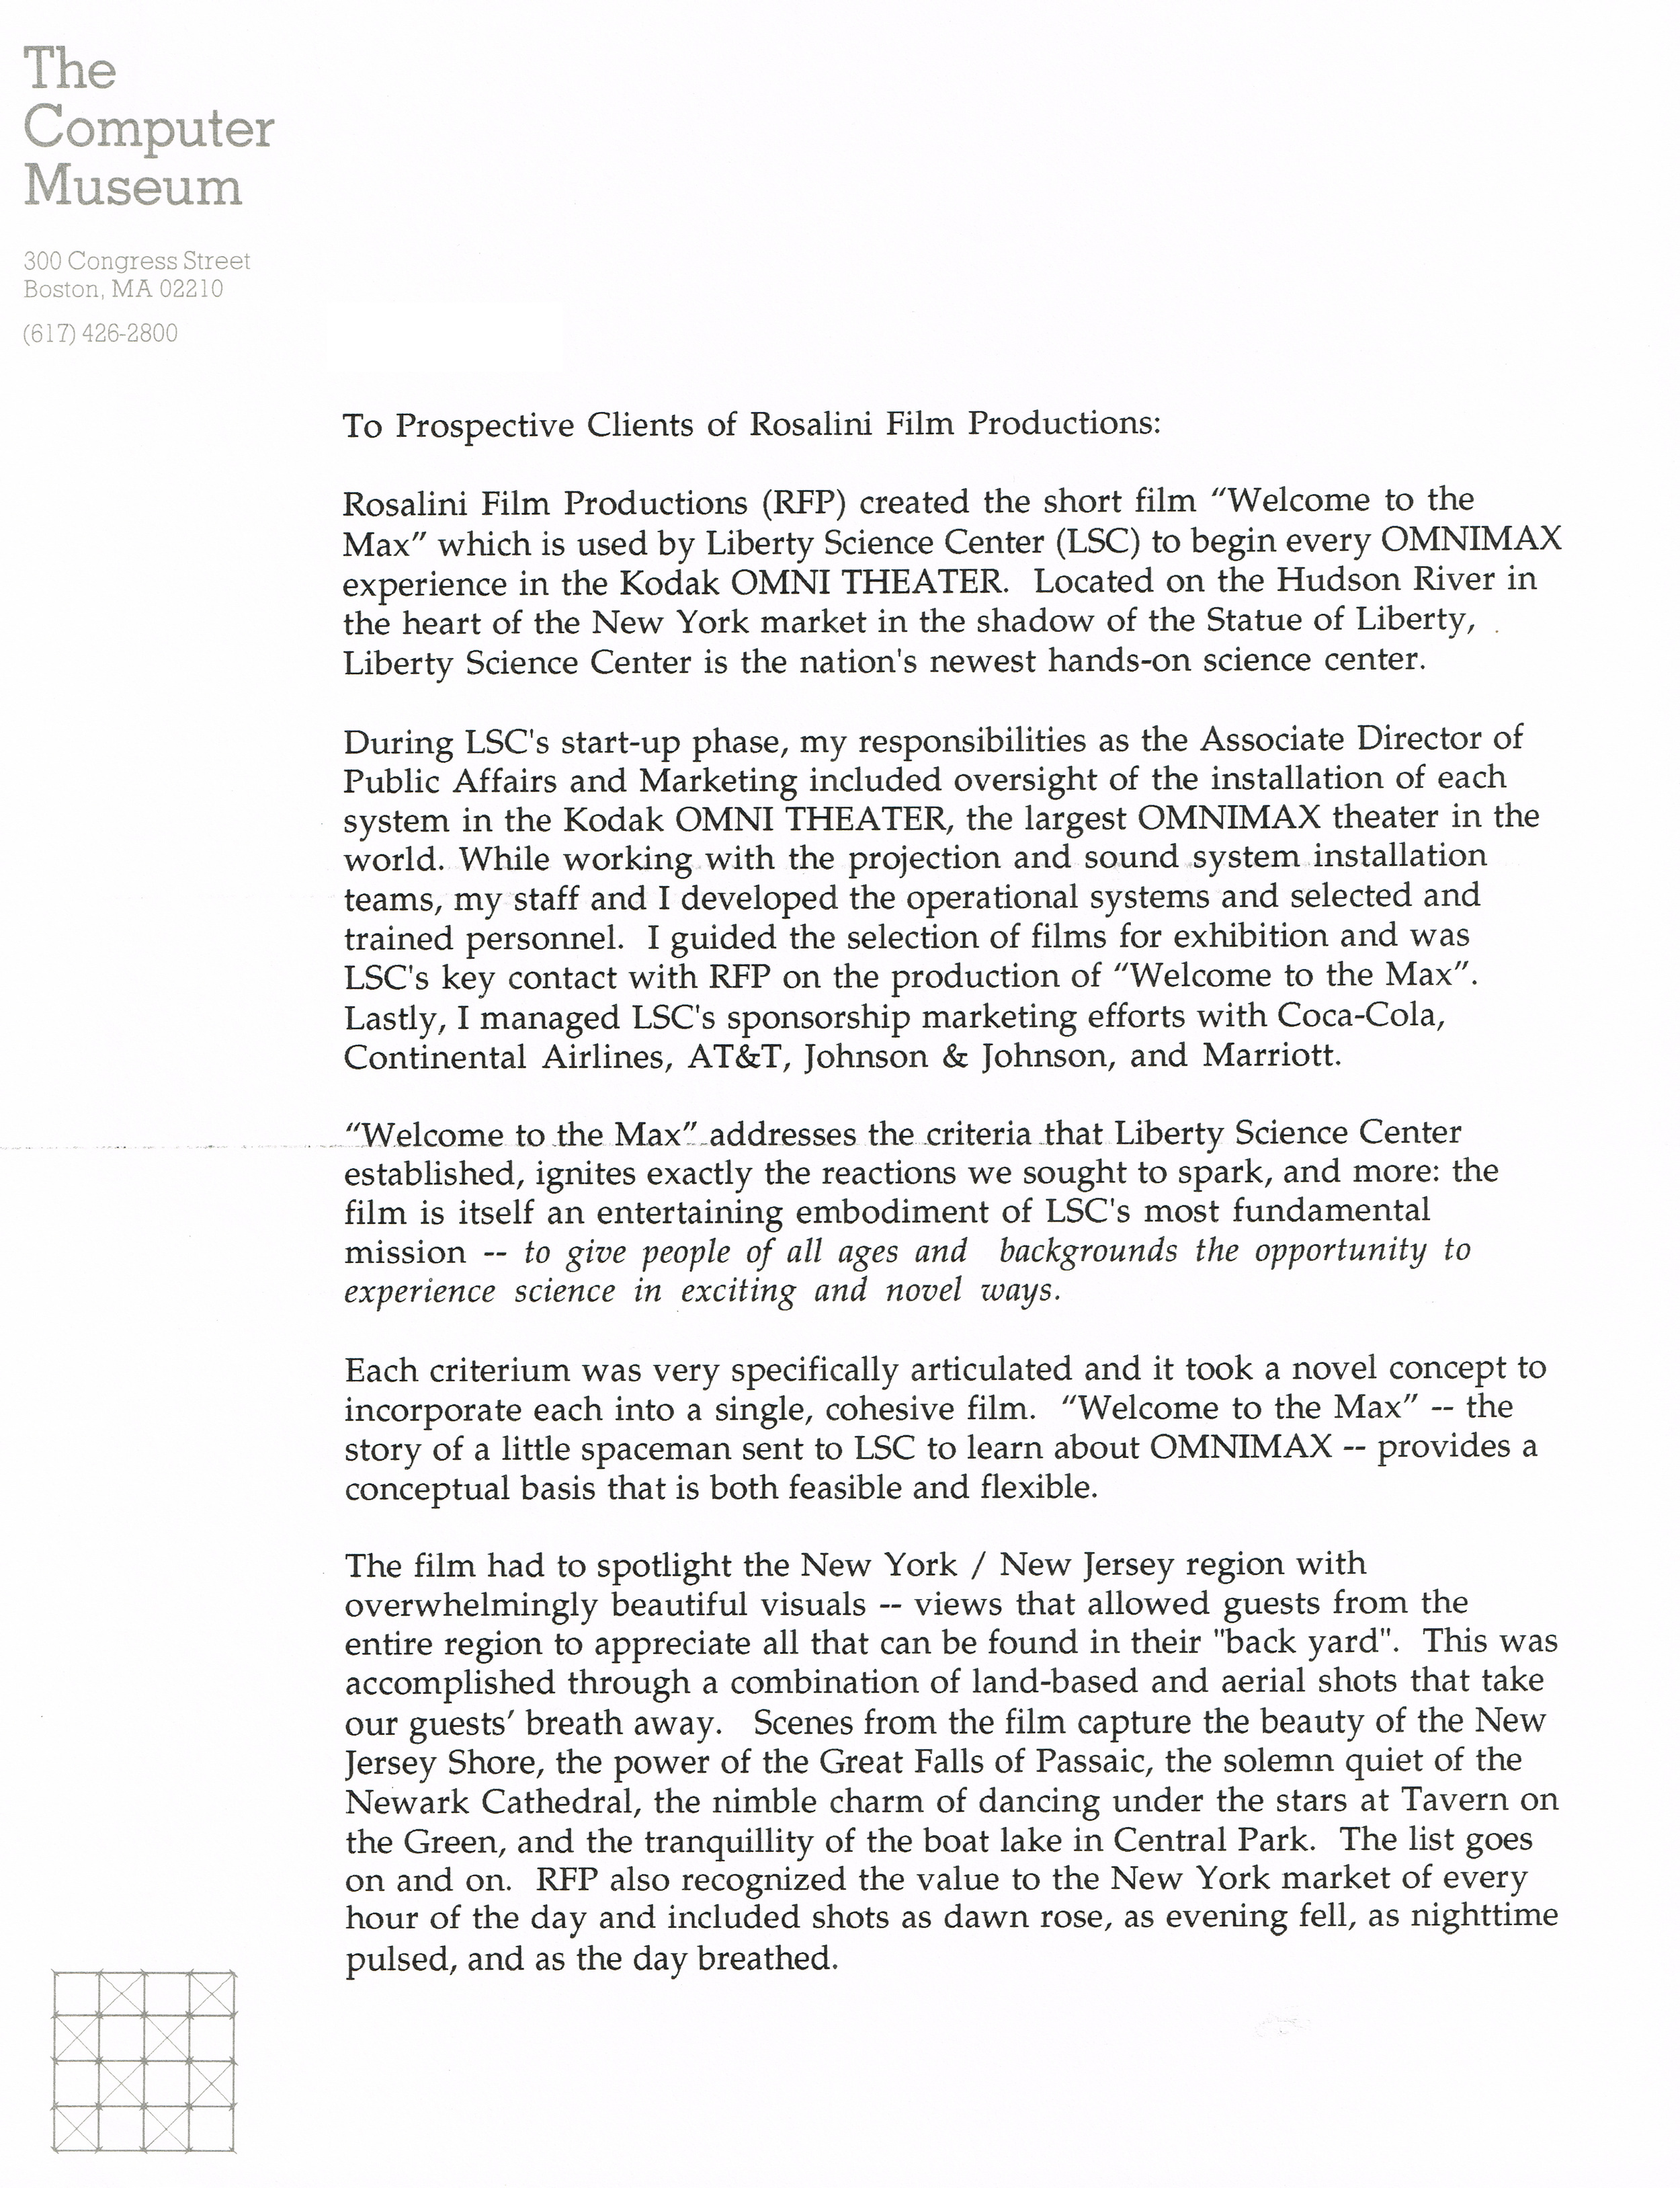 WTTM_Letter of Recommendation_John Marchiony_p1 copy.jpg